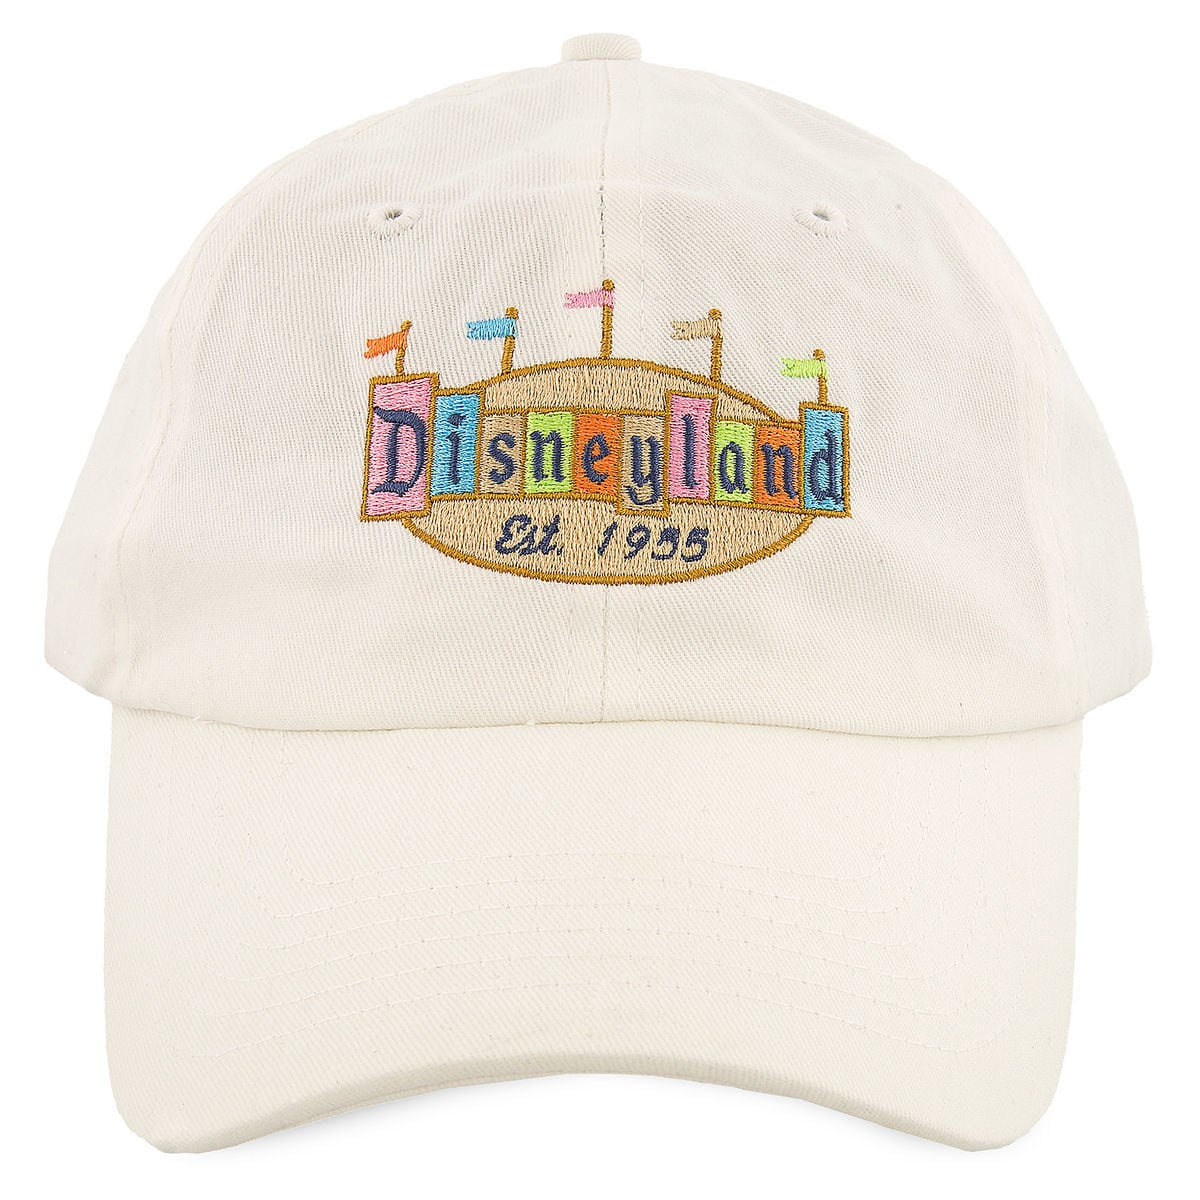 Product Image of Disneyland Retro Baseball Cap for Adults   1 621edd7e0d5